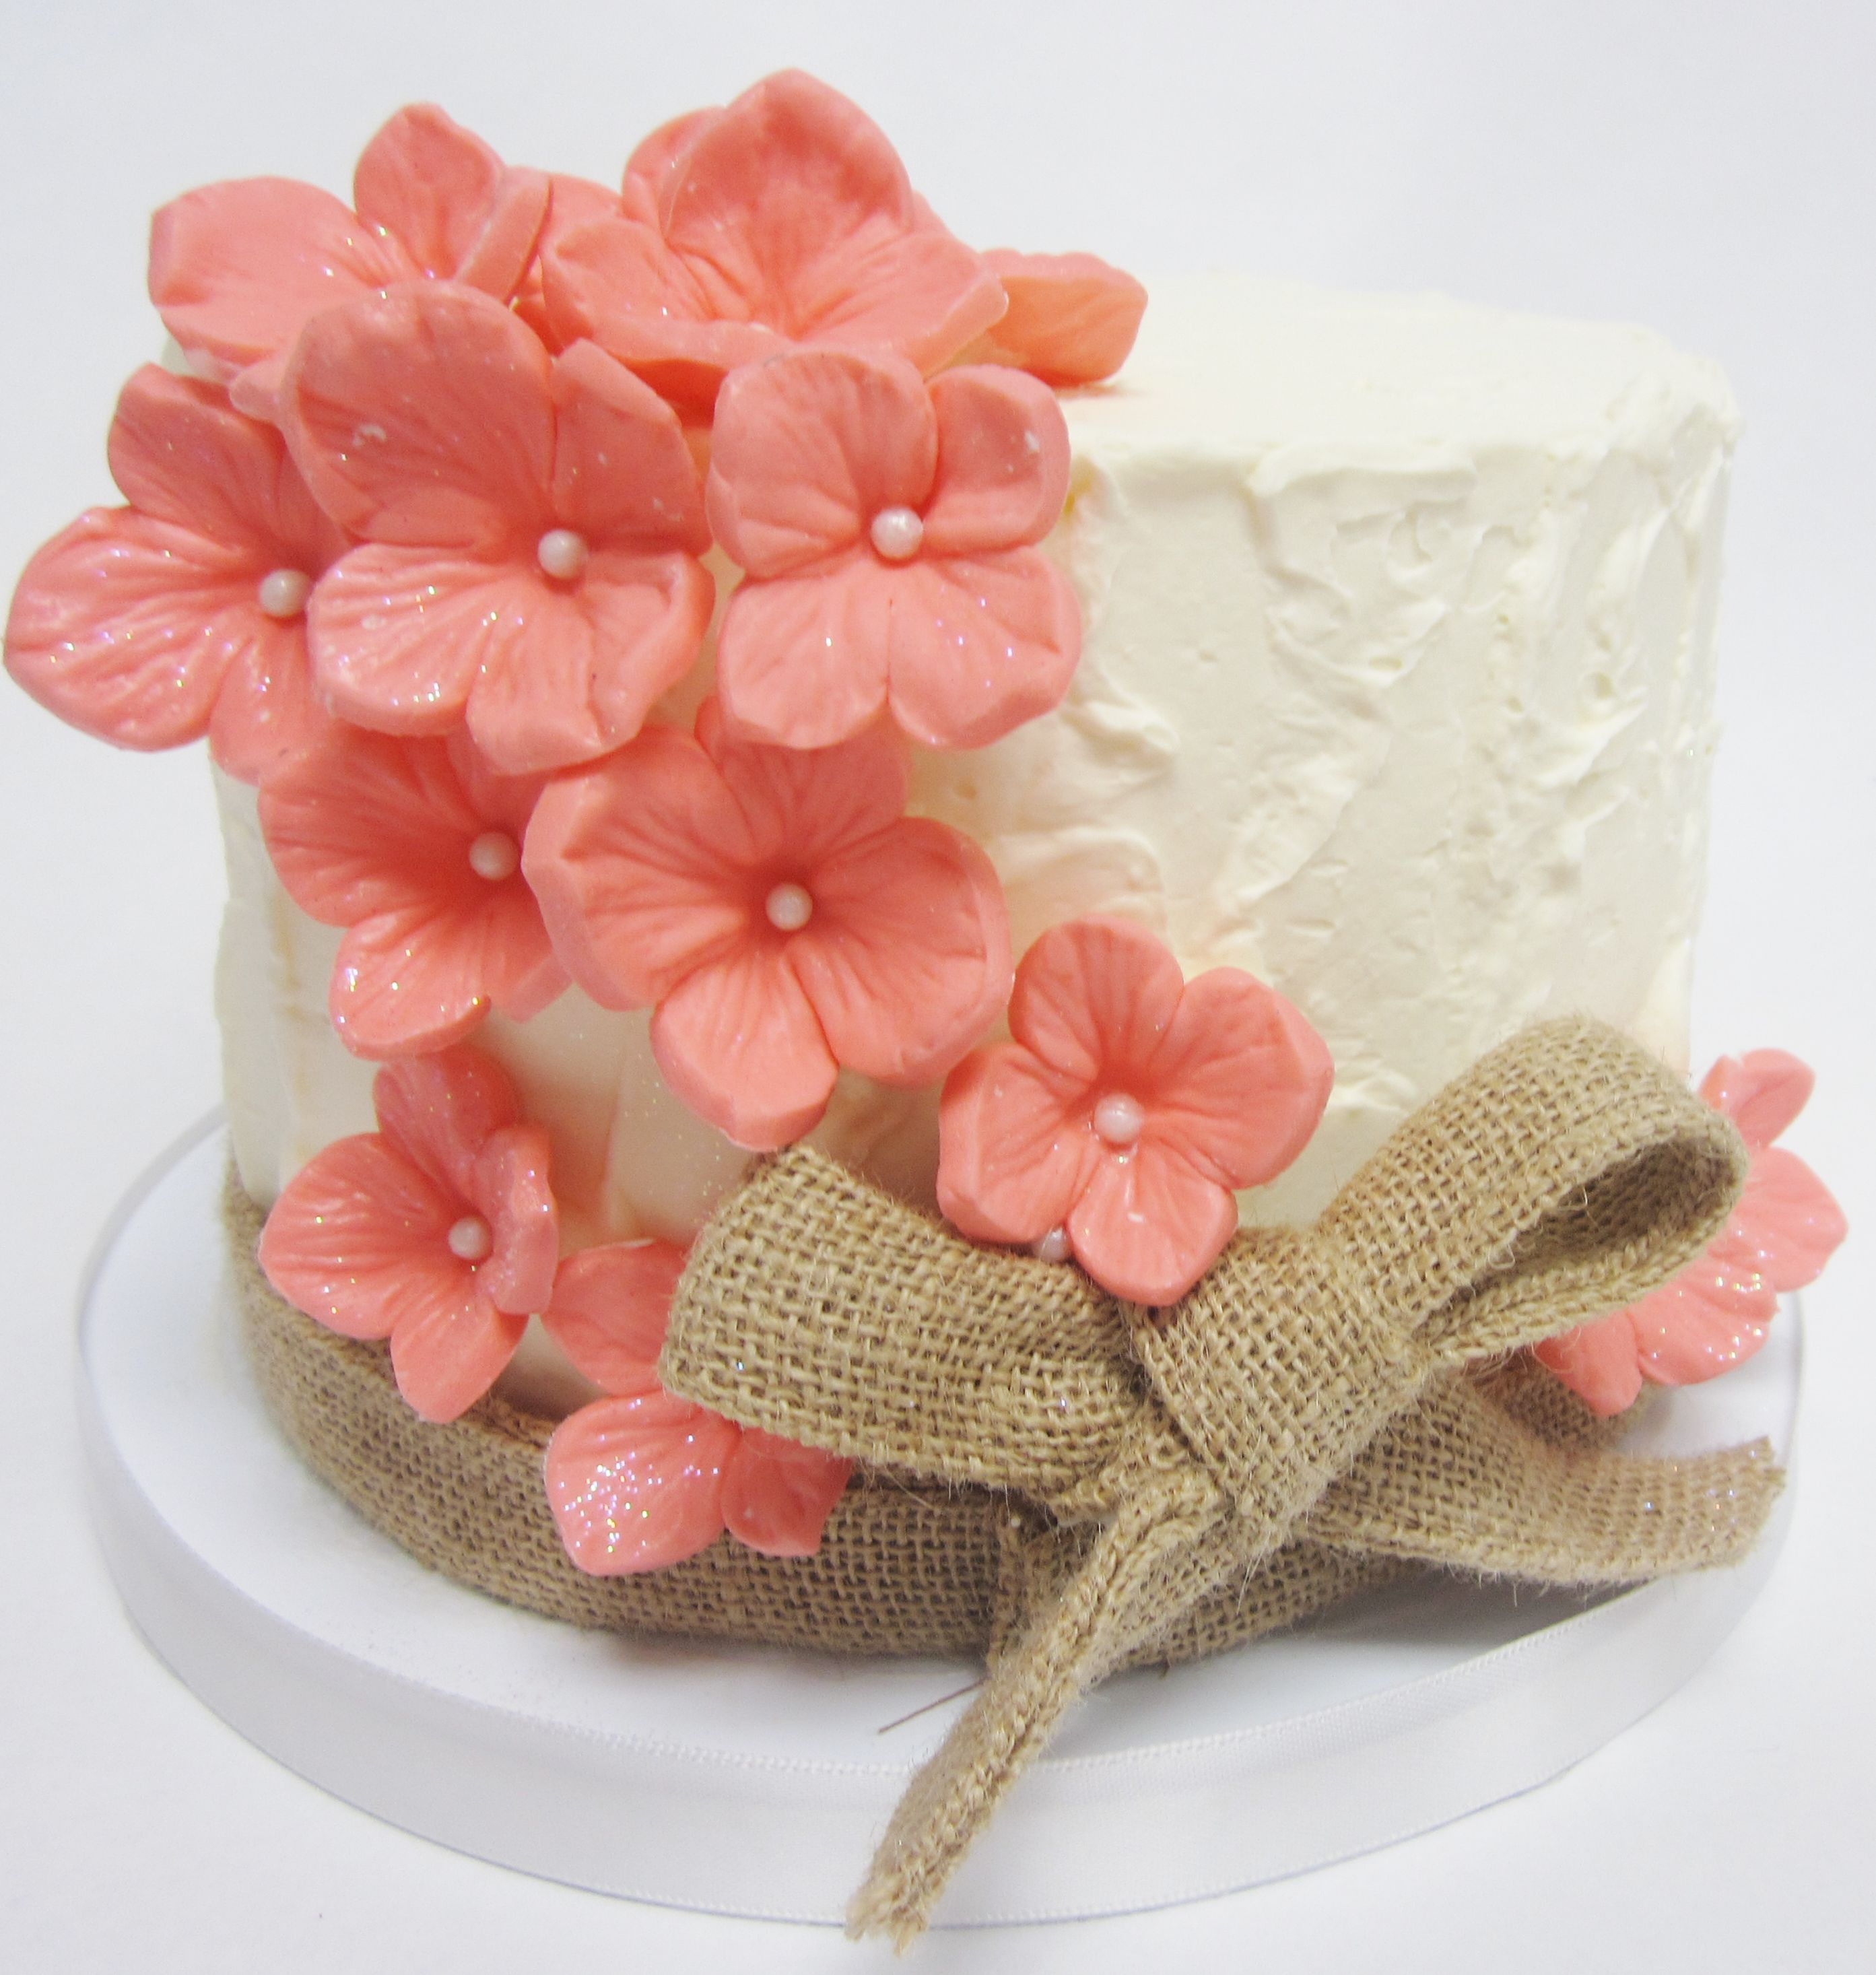 Rustic fondant flower wedding cake from Flavor Cakes made